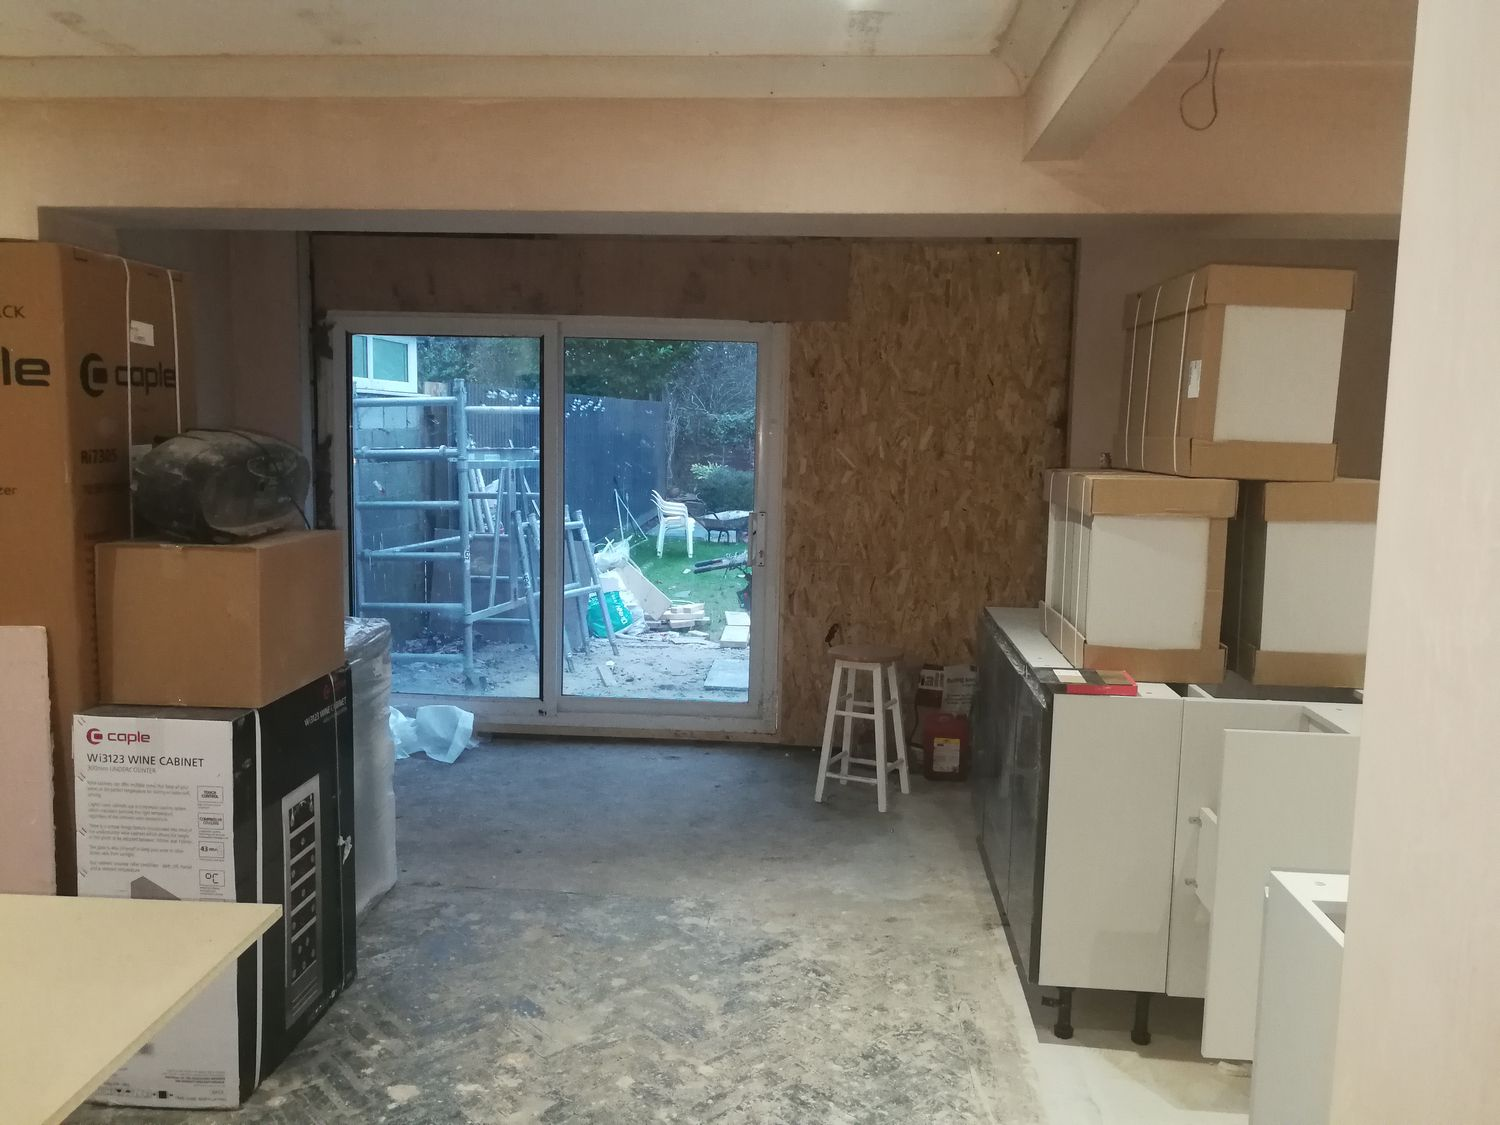 A photo of the same angle with bare plaster walls, some of the kitchen units stacked up and temporary uPVC sliding doors.